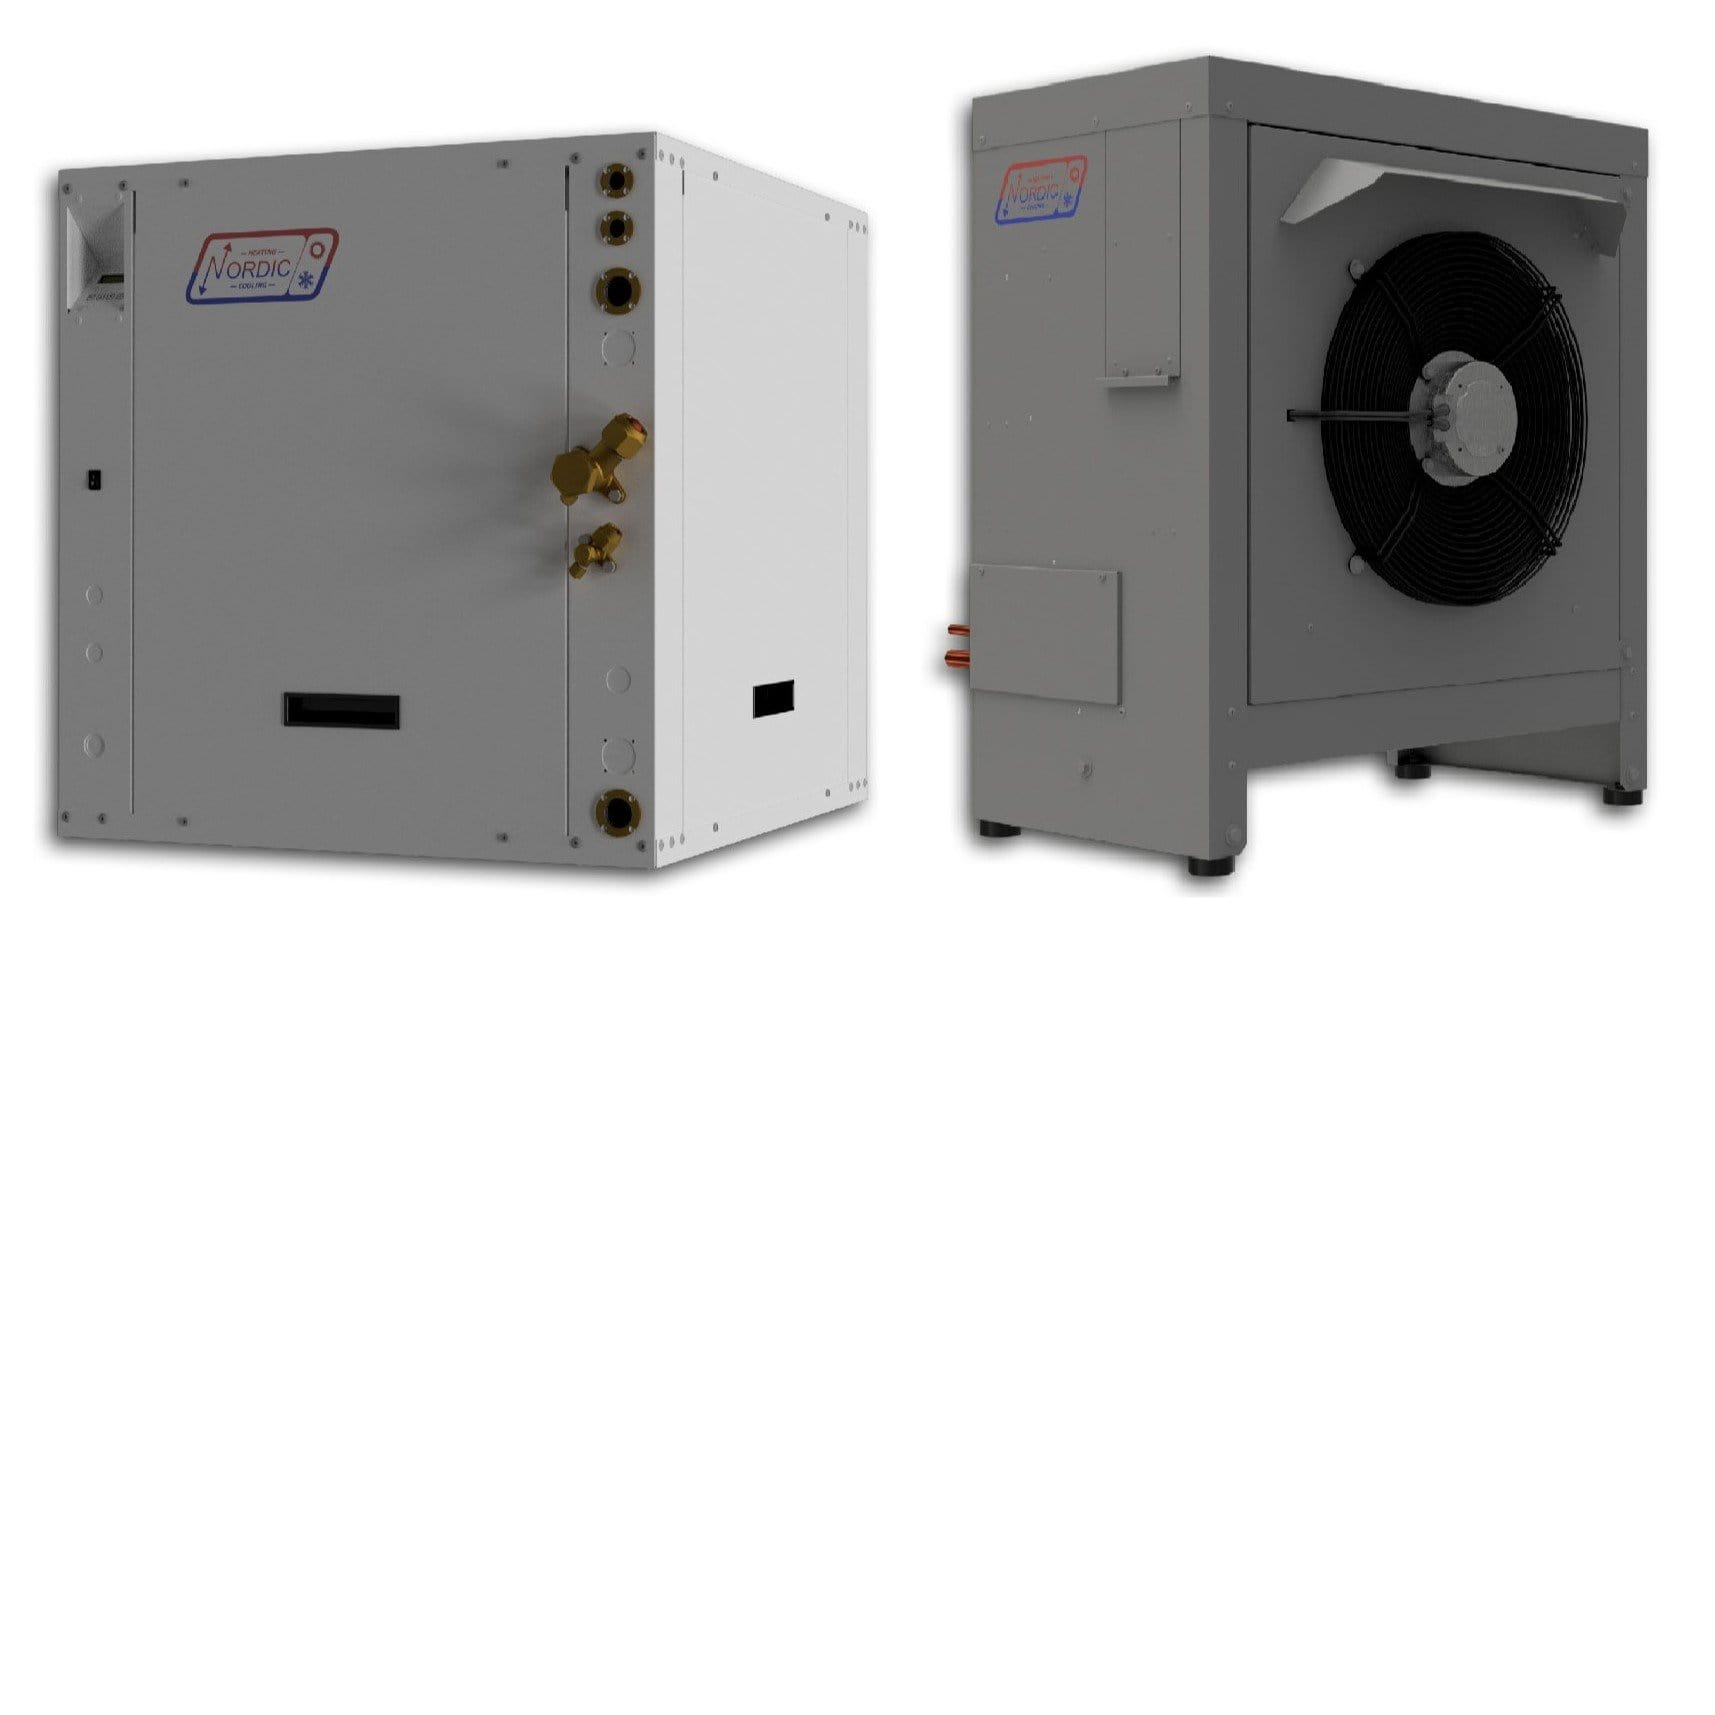 ATW-65 Air to Water Heat Pump - Nordic ATW65 - Split Type - 5 Tons Nominal Cooling Capacity